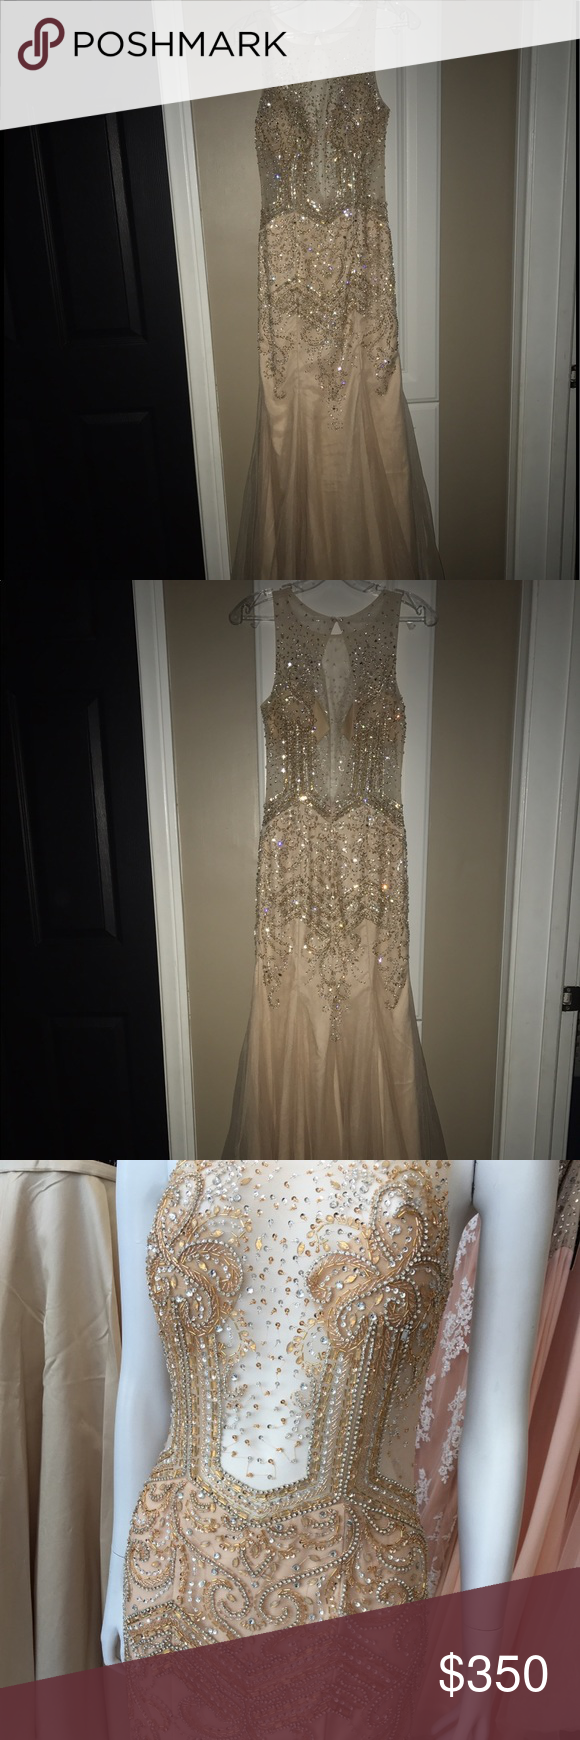 Prom Dress 250 or best offer Champagne prom dress